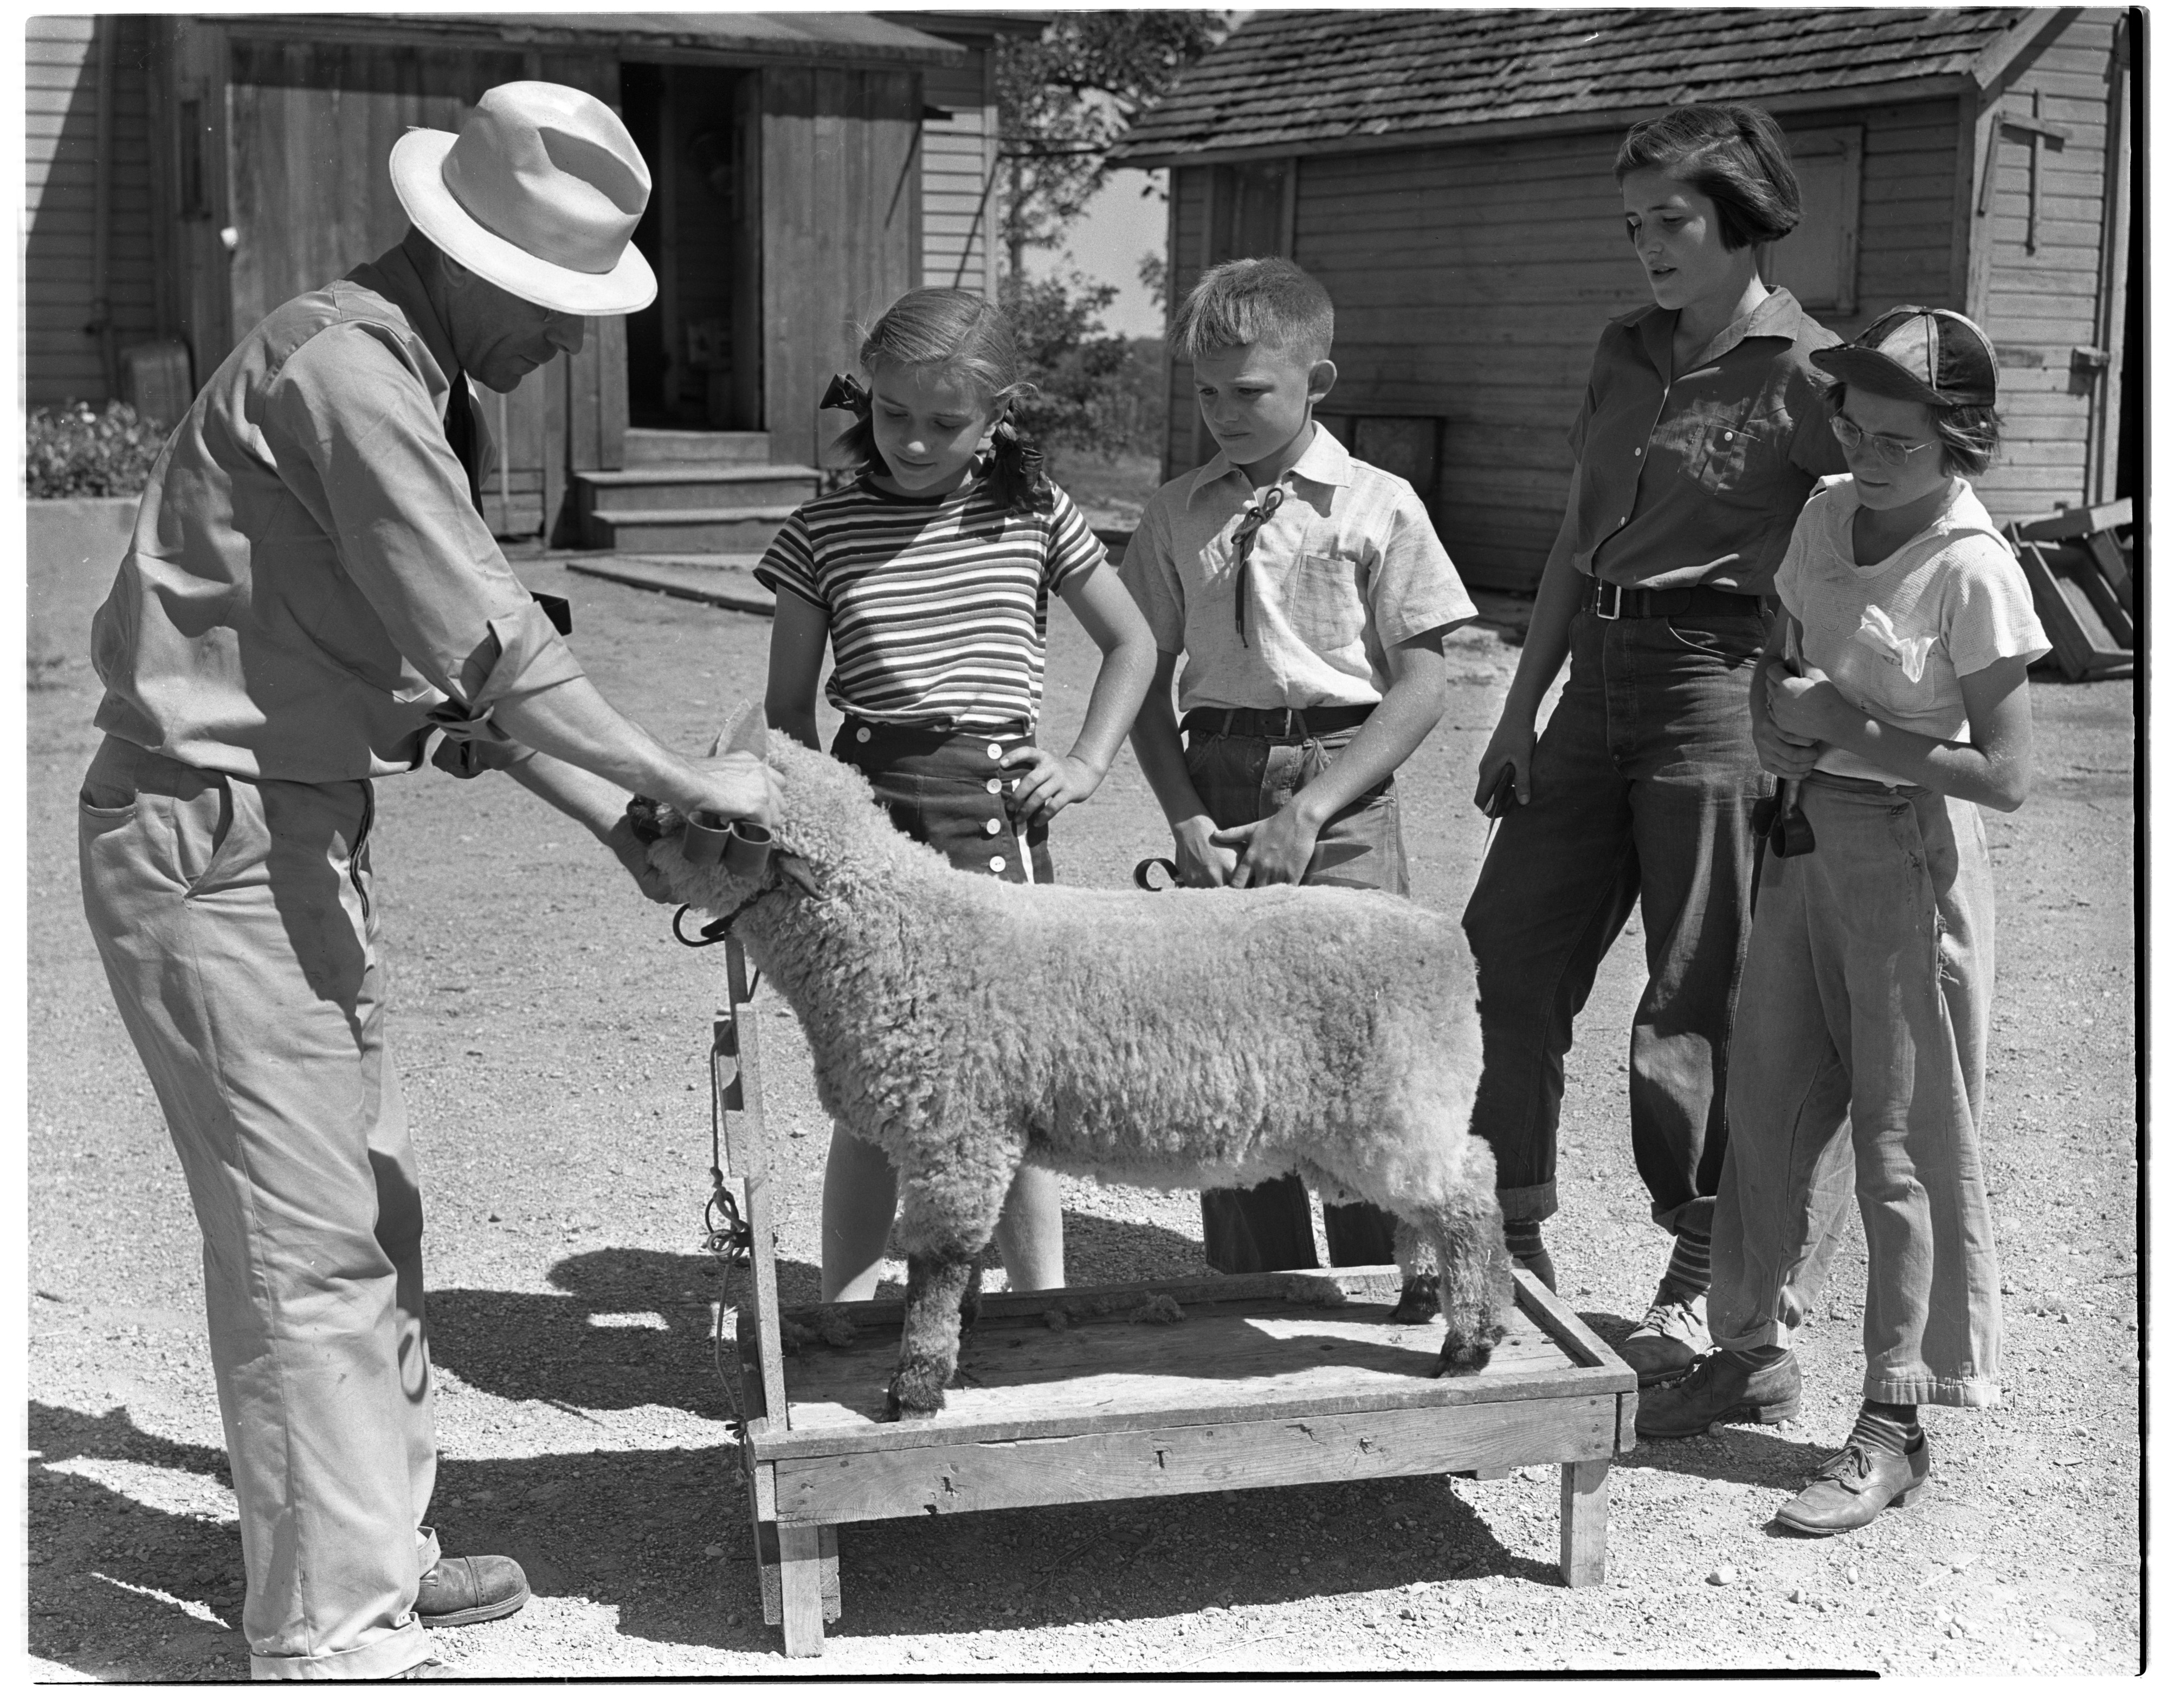 4-H Sheep Shearing Demonstration at Forshee Farm image